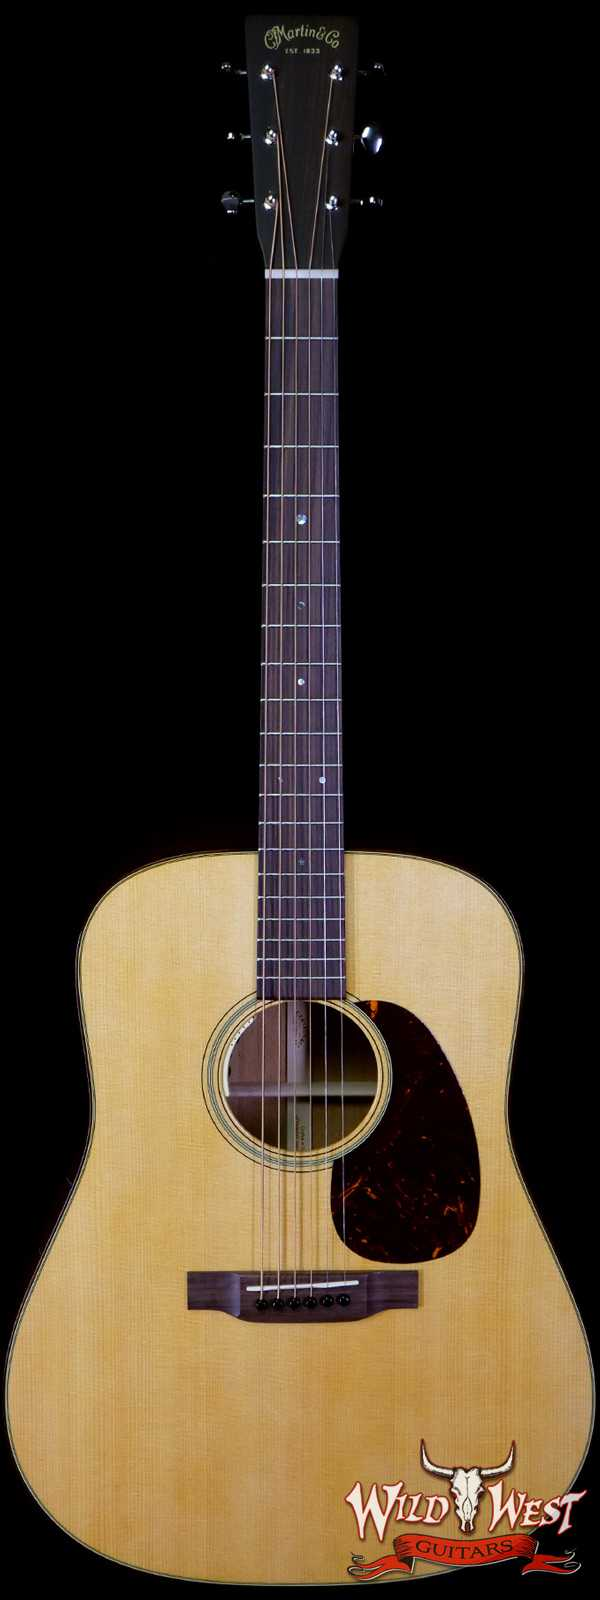 Martin USA Limited Edtion D-18E 2020 w/ Case Aging Toner Electric-Acoustic Guitar